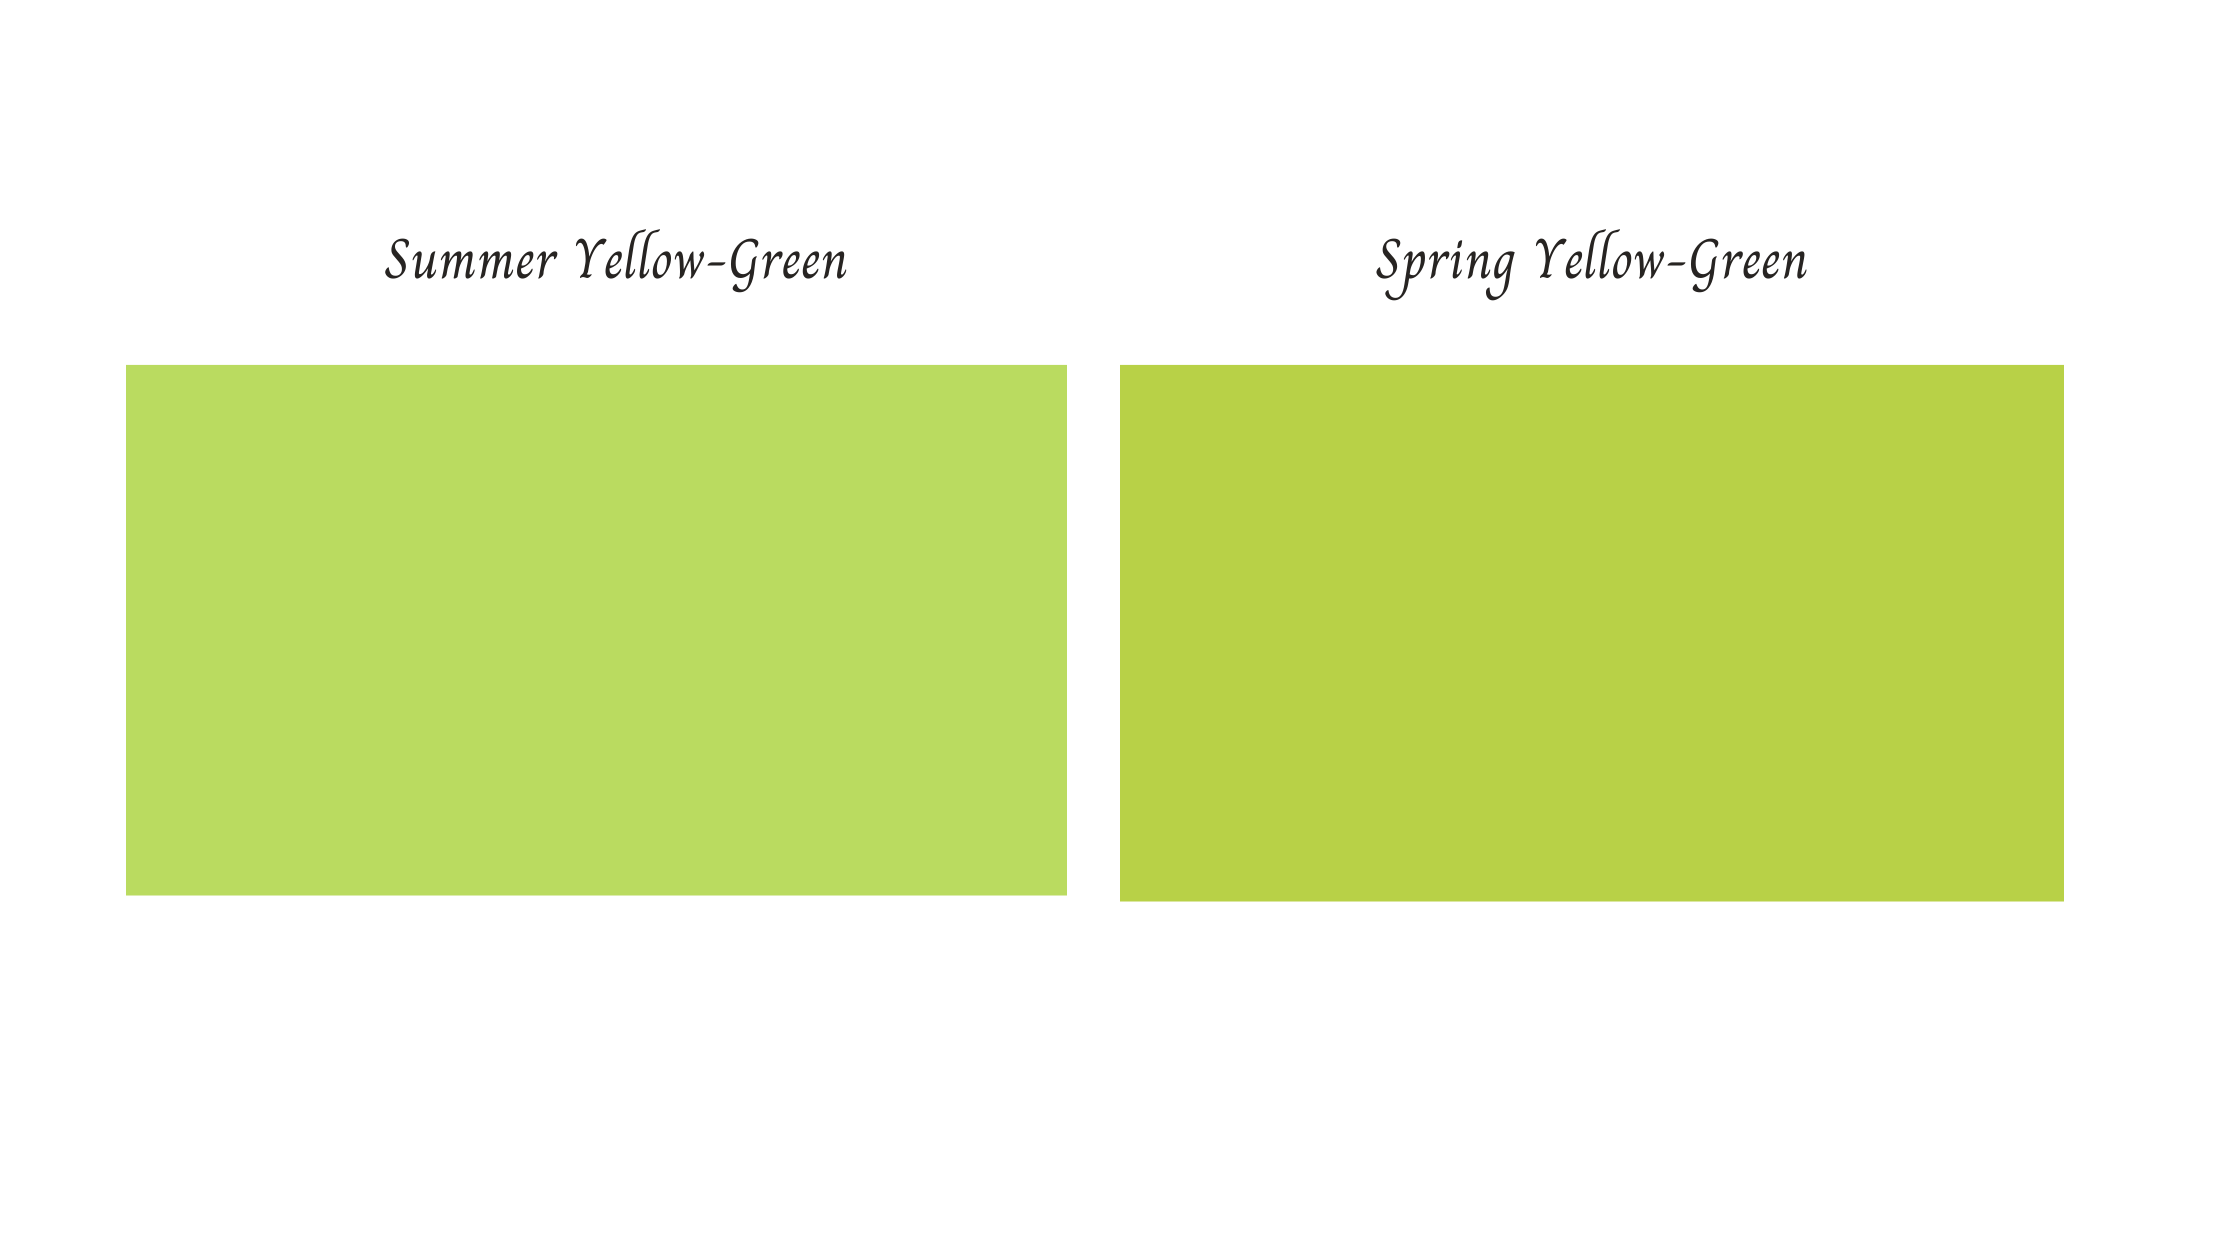 Summer vs Spring Yellow-Green